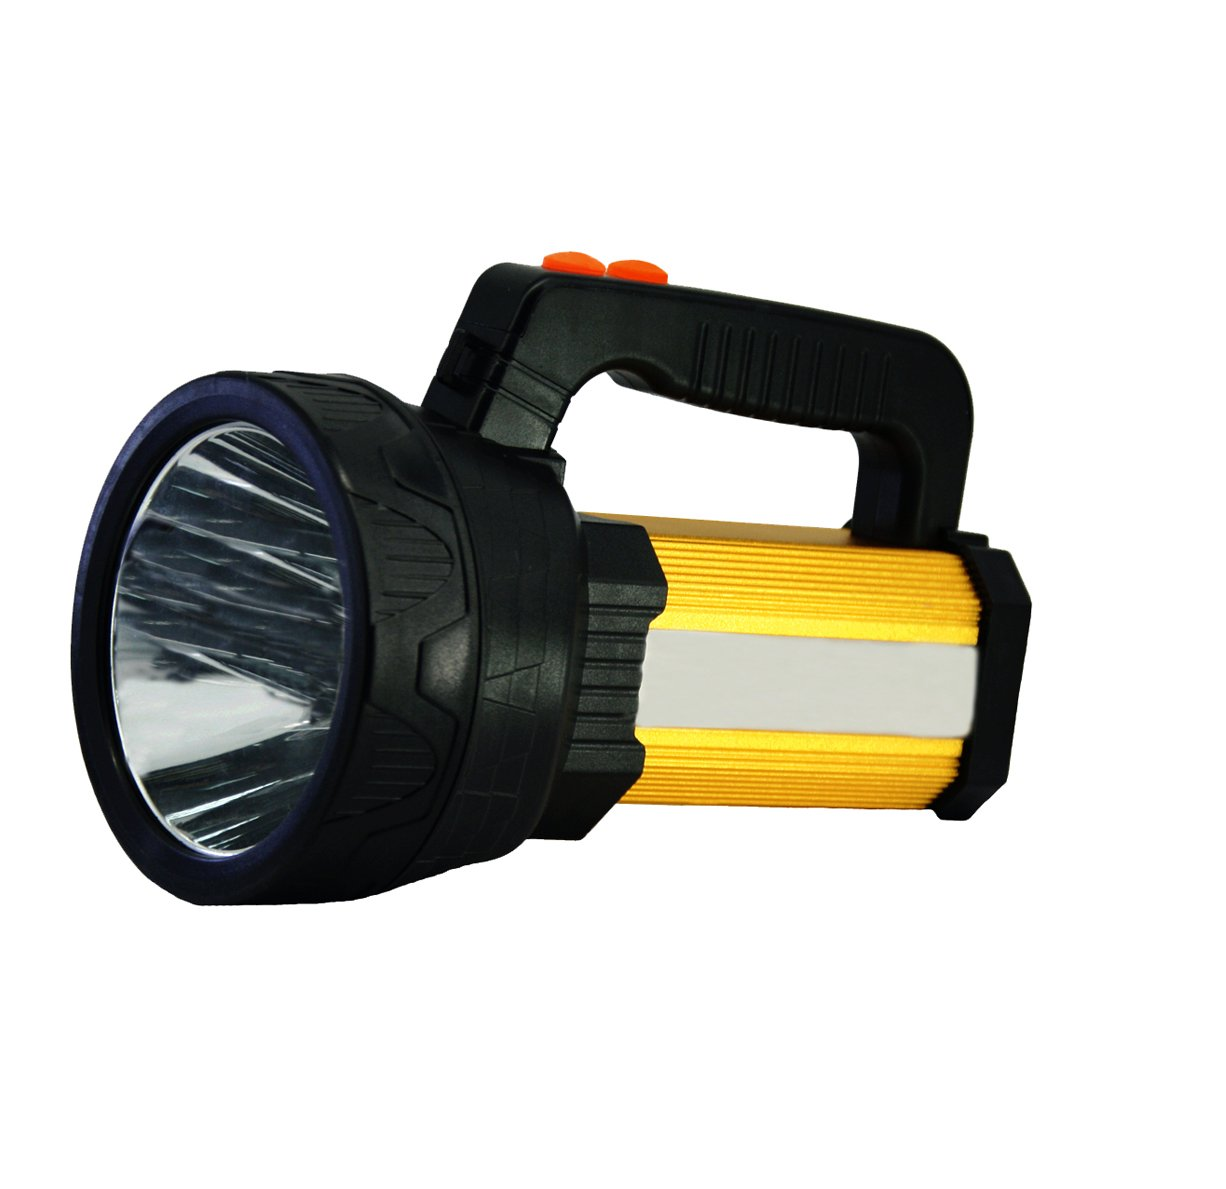 LED Rechargeable Handheld Searchlight,Super Bright 10000 LUMENS Outdoor Spotlight with 5 Light Model&8000mah Power bank (Black)